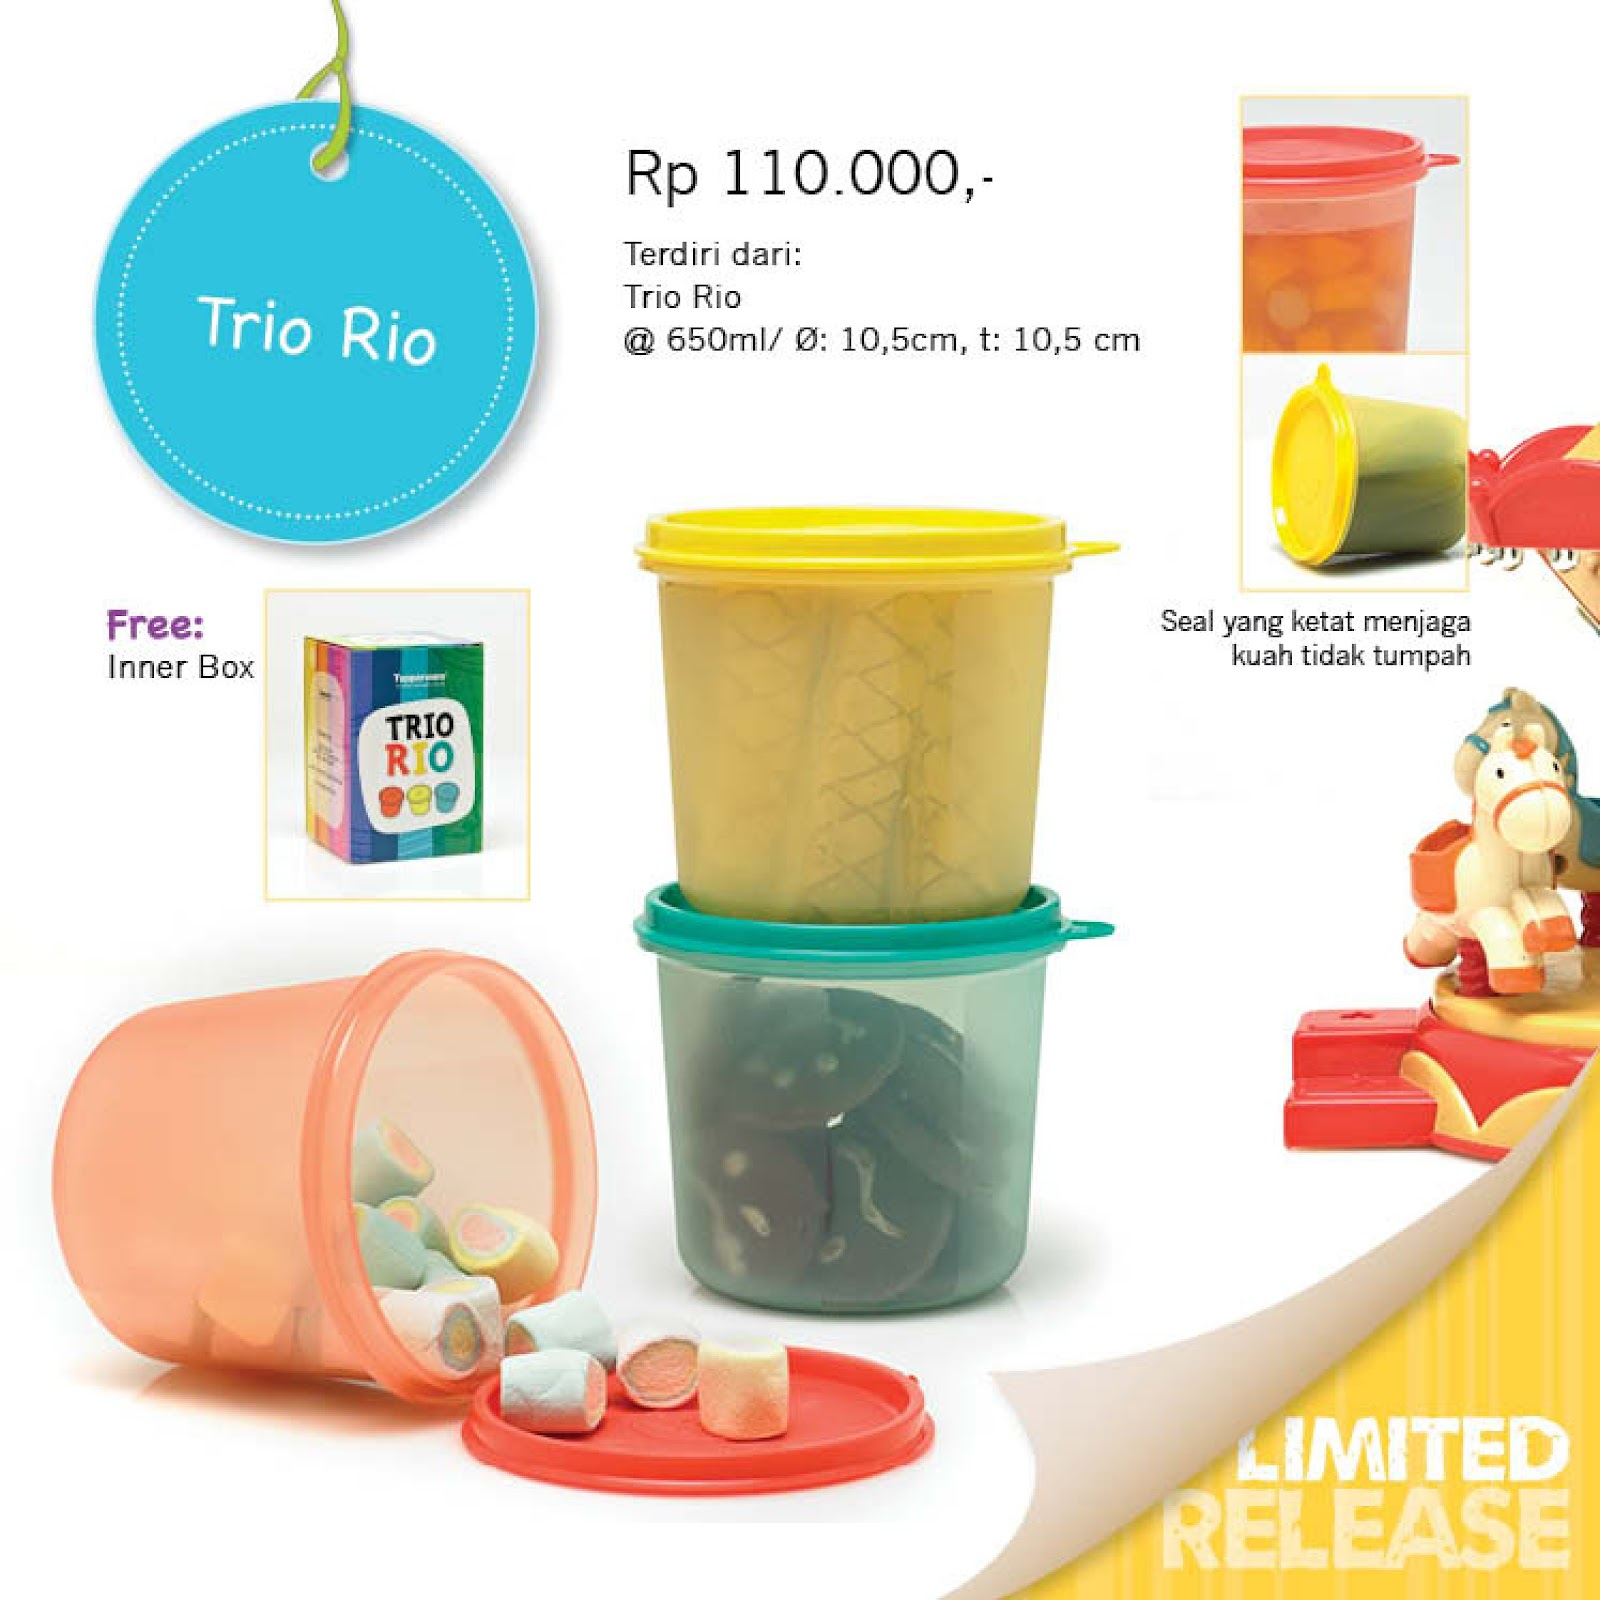 tupperware ponorogo katalog tupperware promo april 2012. Black Bedroom Furniture Sets. Home Design Ideas